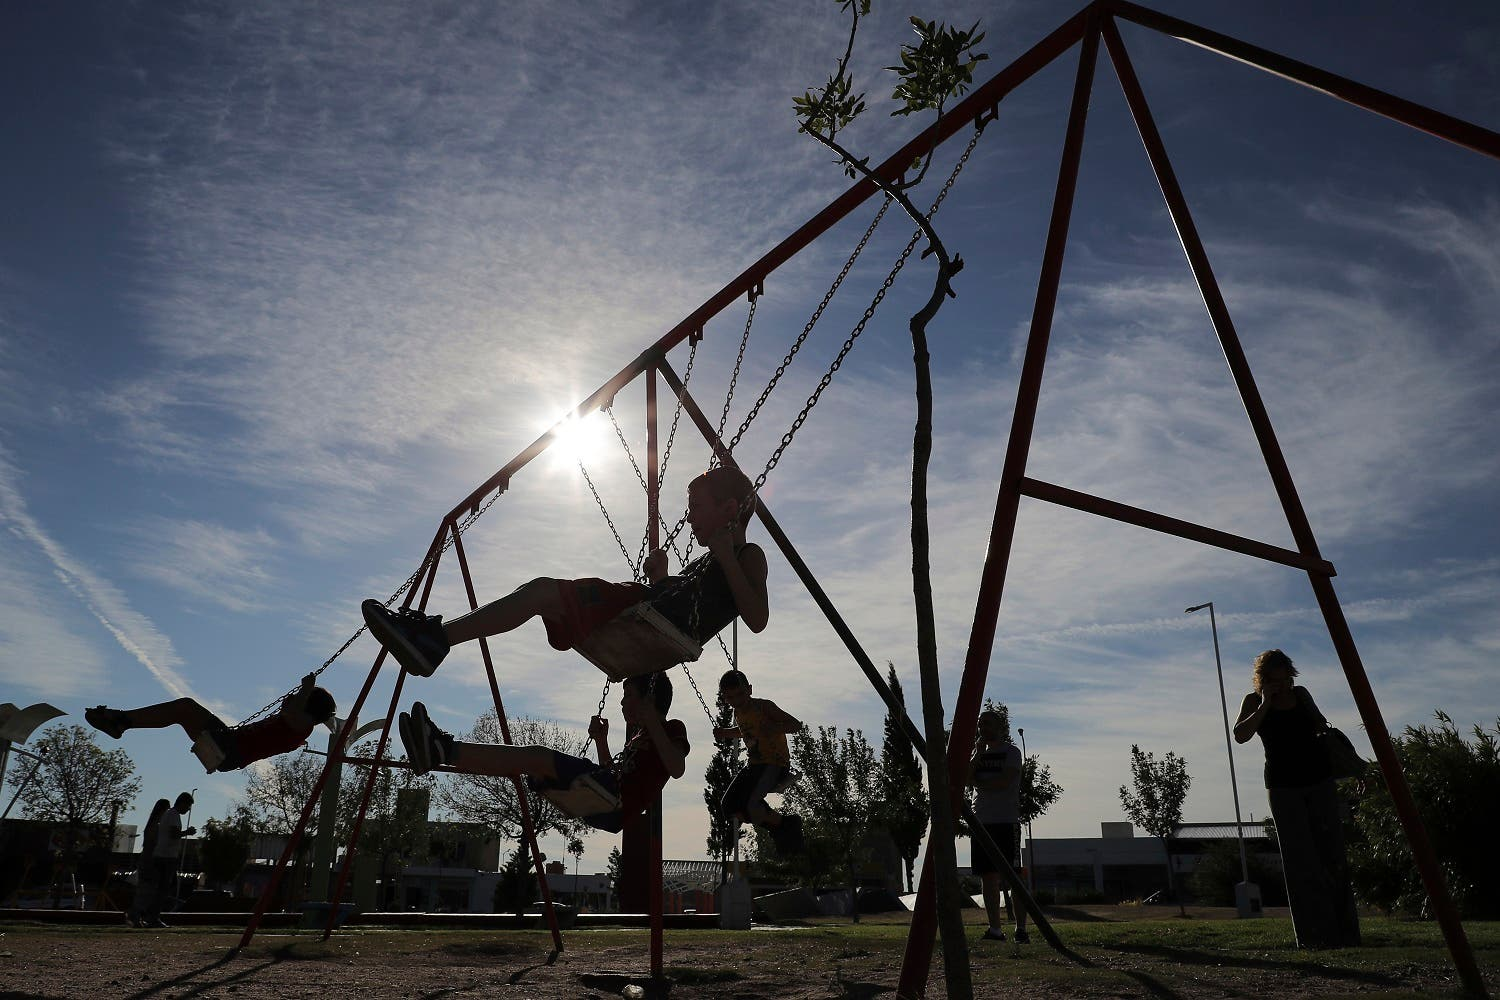 Syrian migrant children play in a park in the town of La Punta, San Luis, Argentina. (AP)